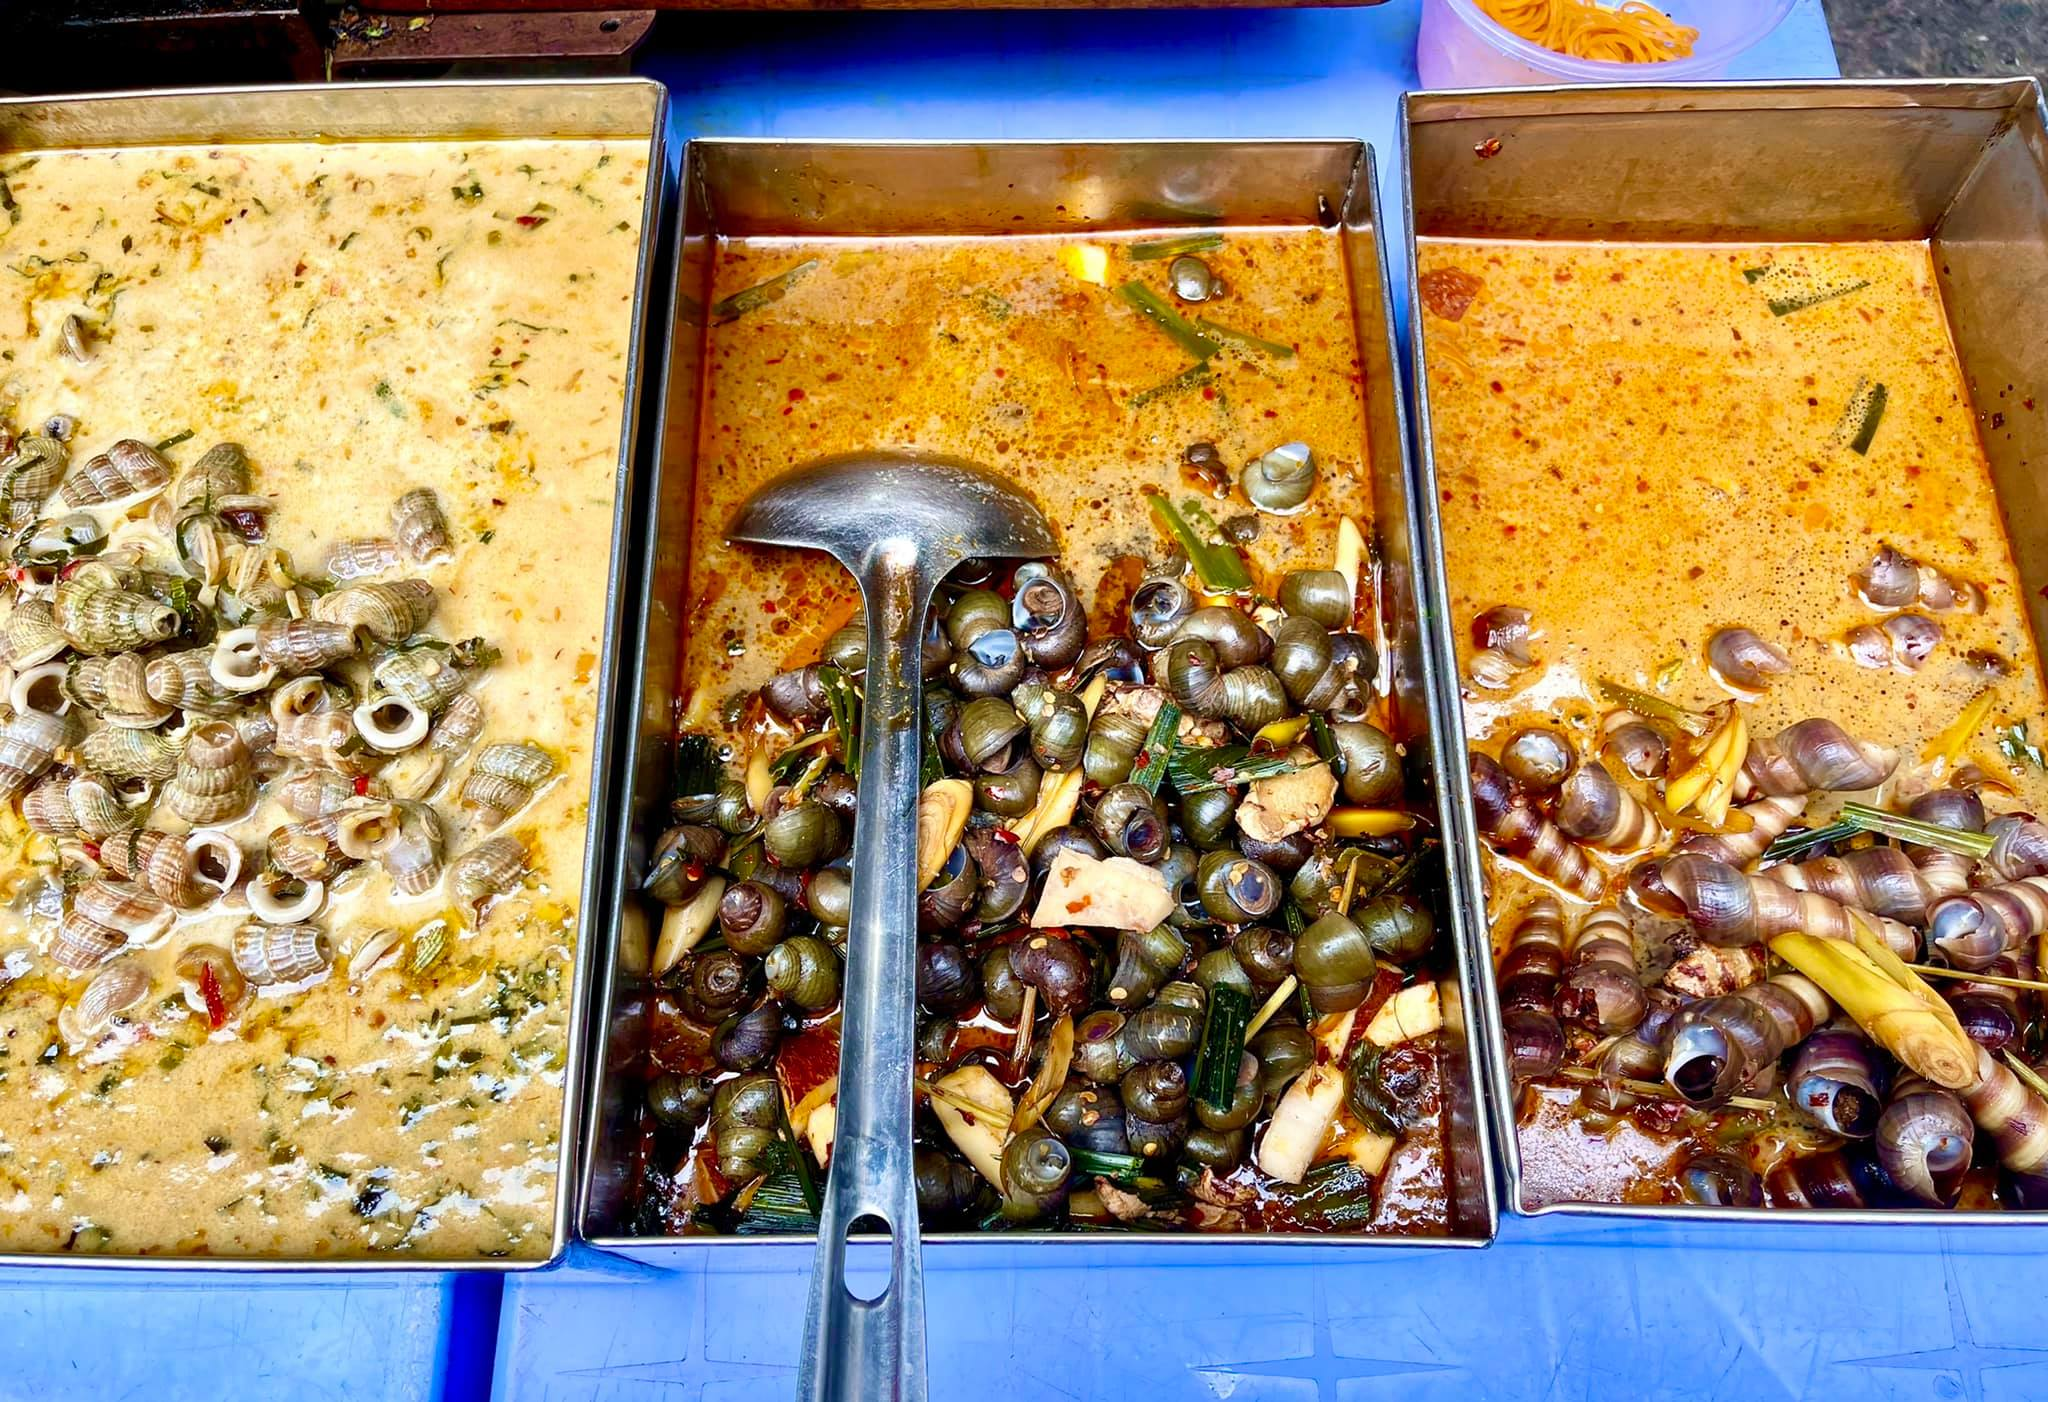 A photo provided by Jordy Trachtenberg shows snail dishes sold at a stall at Ba Hoa Market in Ho Chi Minh City's Tan Binh District.